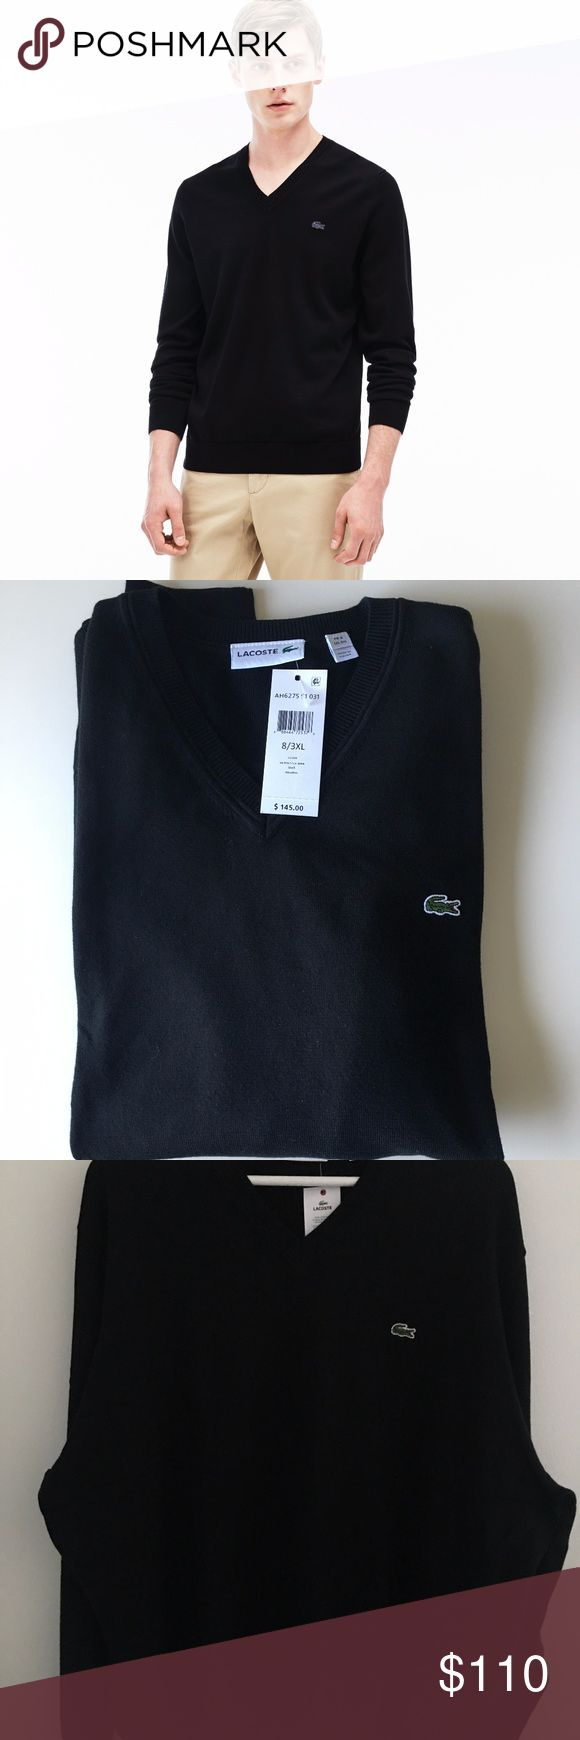 Lacoste Men's Cotton Jersey V-Neck Sweater, Black Lacoste Men's Cotton Jersey V-Neck Sweater, Black AH6275 51  Very comfortable and very stylish. Size: 3XL (8) Colors: Black  Effortless style is yours with this classic sweater.  Crafted in feel-good cotton and shaped with a V-neck, it looks great layered over a tee or collared shirt. V-neck sweater featuring embroidered crocodile logo at left chest Ribbed-knit trim at hem, cuffs, and neck Manufacturer: Lacoste Mens Apparel Model: AH6275 51…